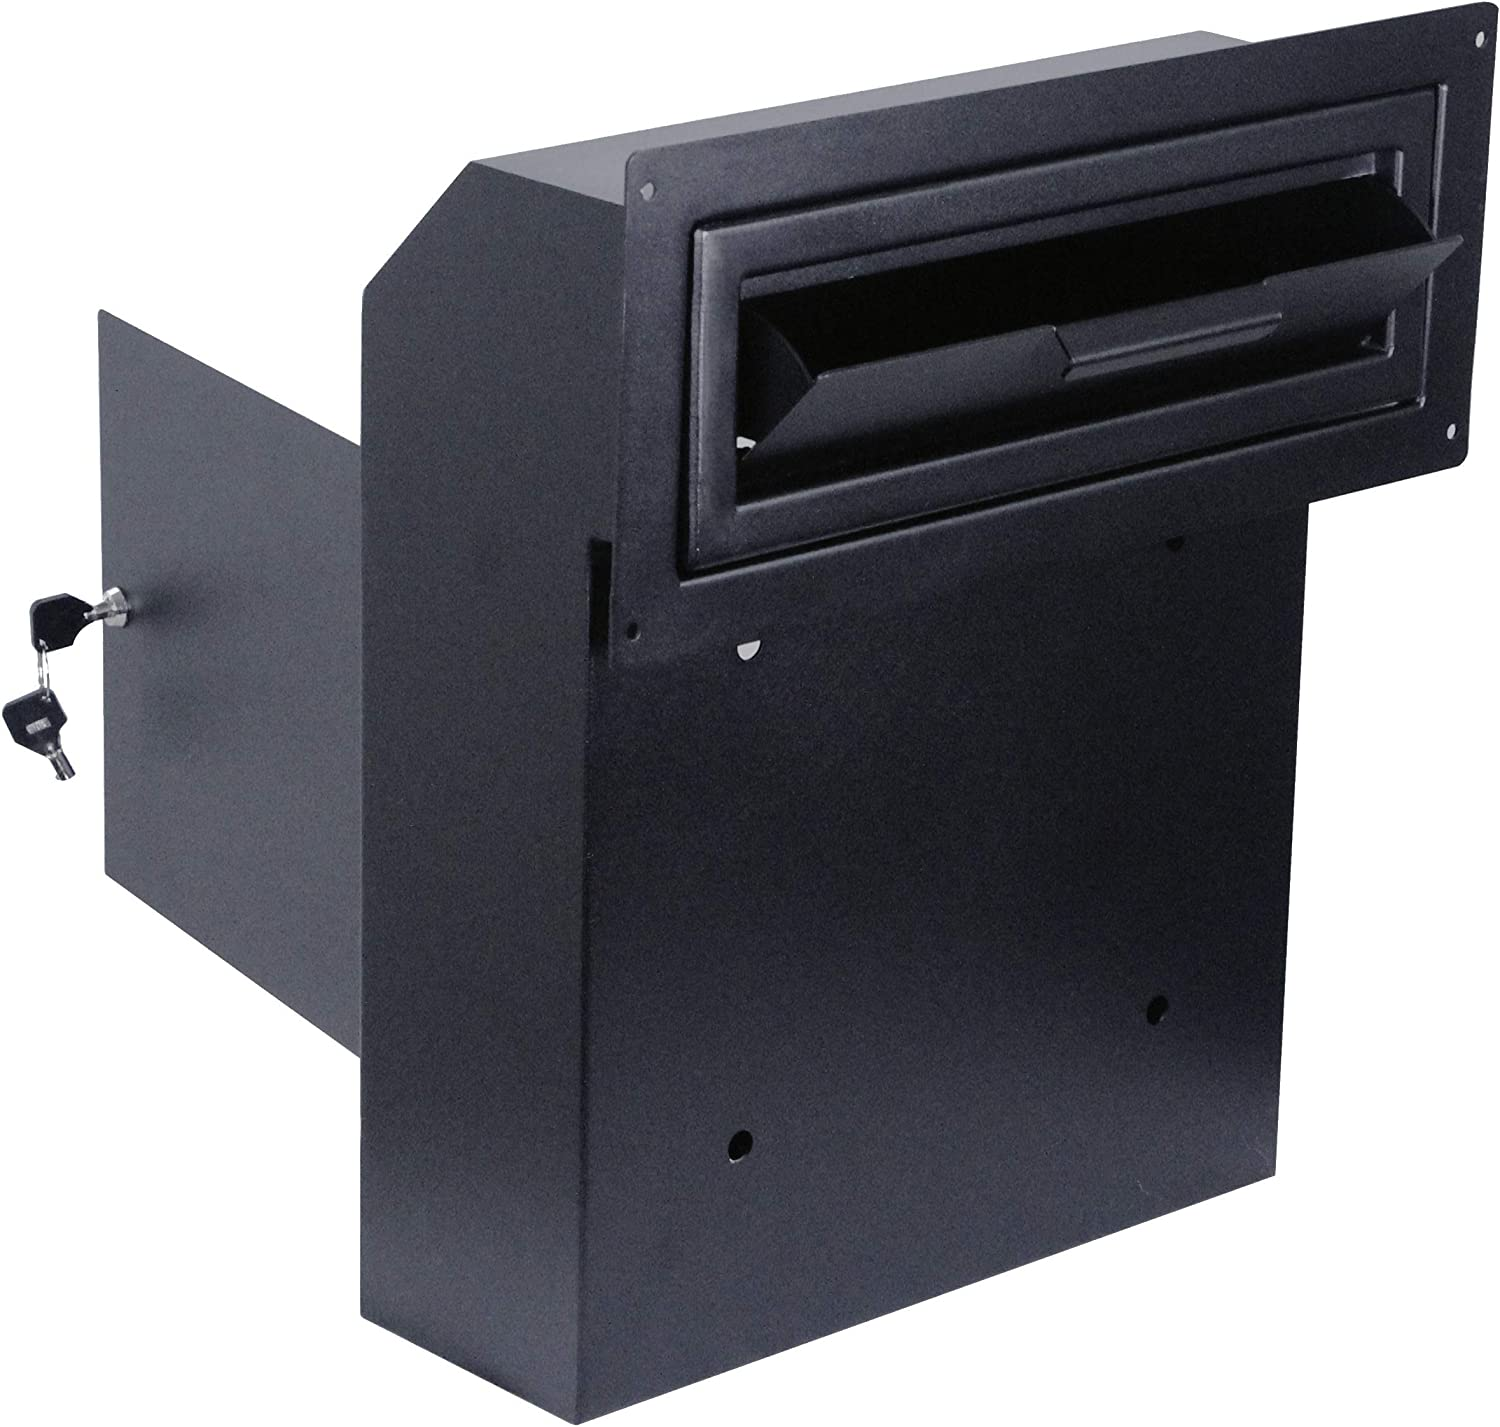 Door Drop Box for Mail, Rent, Deposit, and Night Key - Door Mount Locking Mailbox with Rear Access Through The Door (10.5'' x 2.25'' Mail Slot and 12'' x 4.25'' x 15'' Overall Dimension)